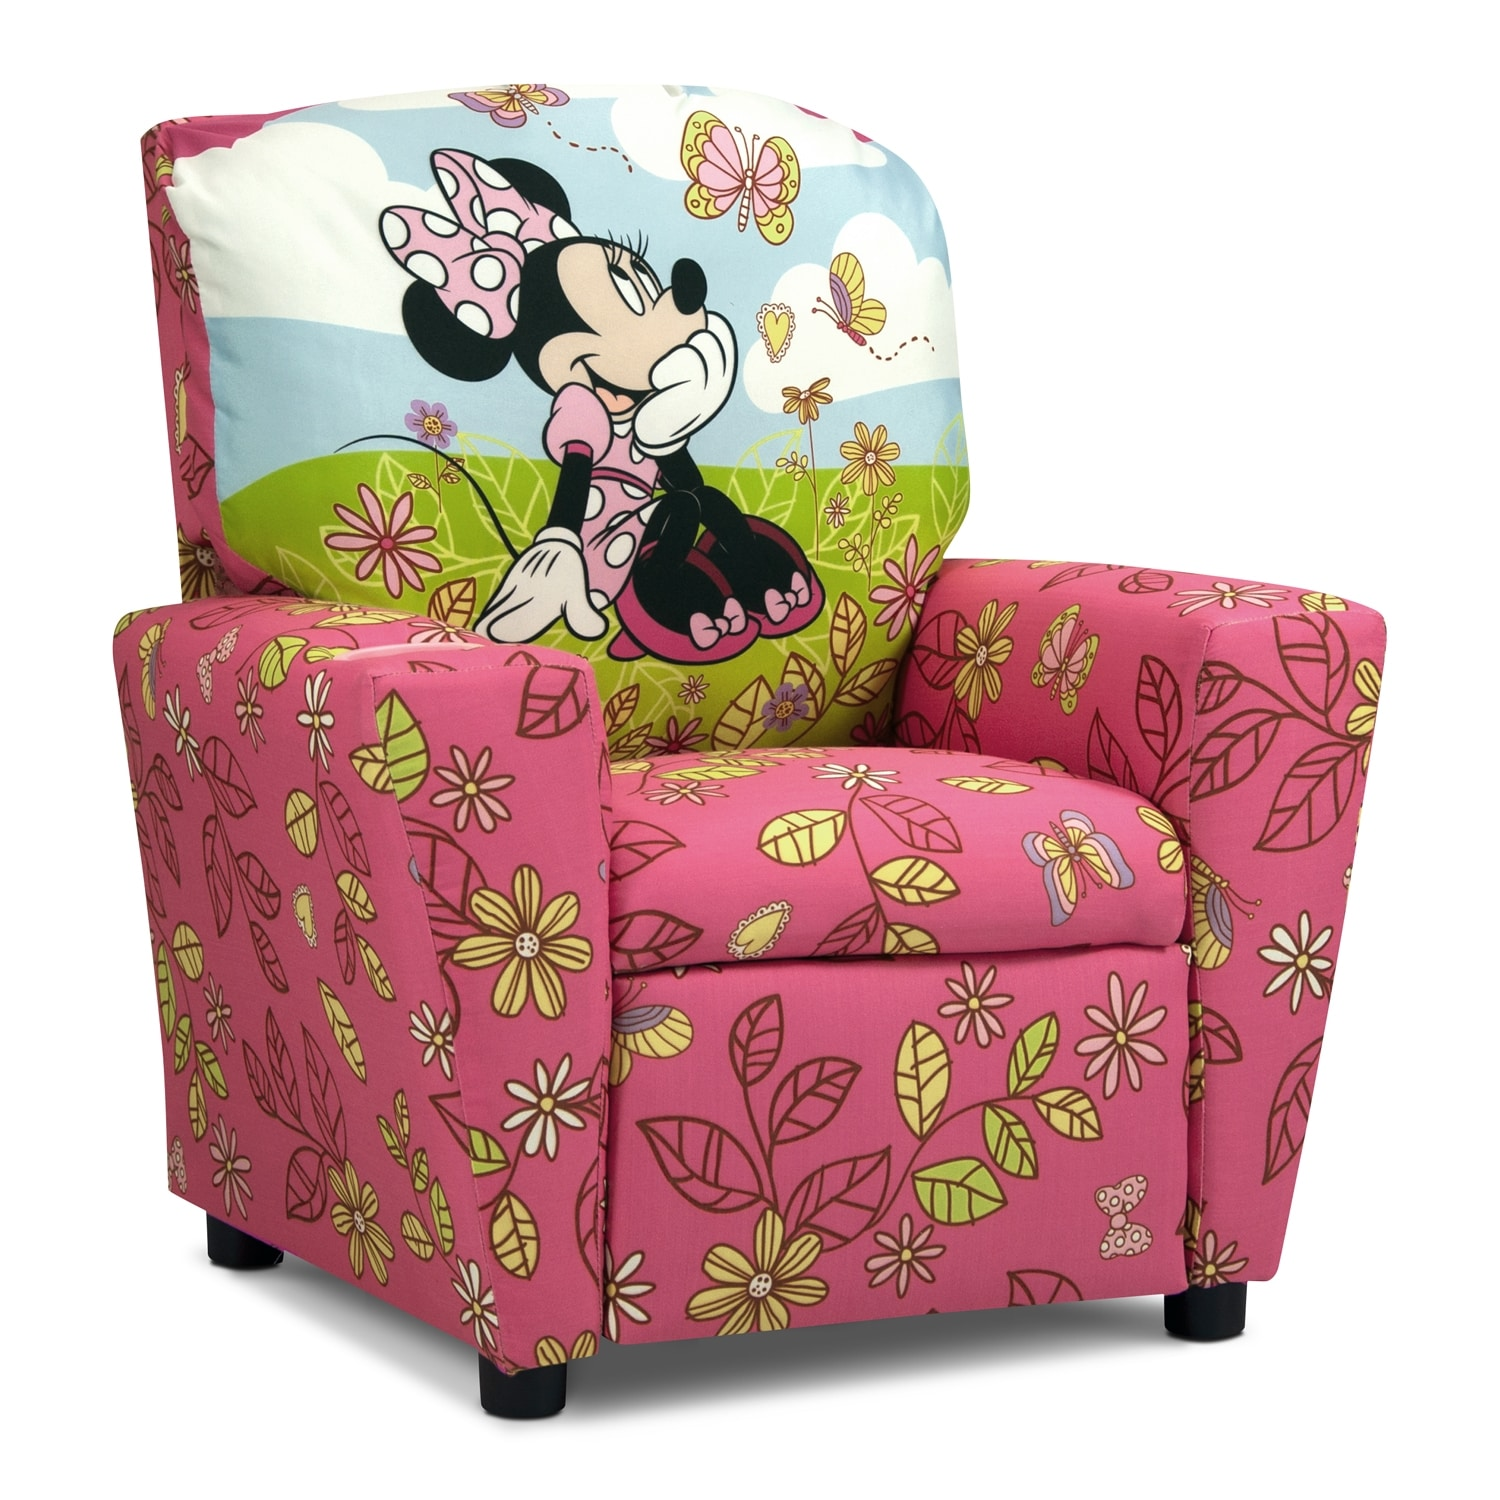 Minnie Mouse Child's Recliner